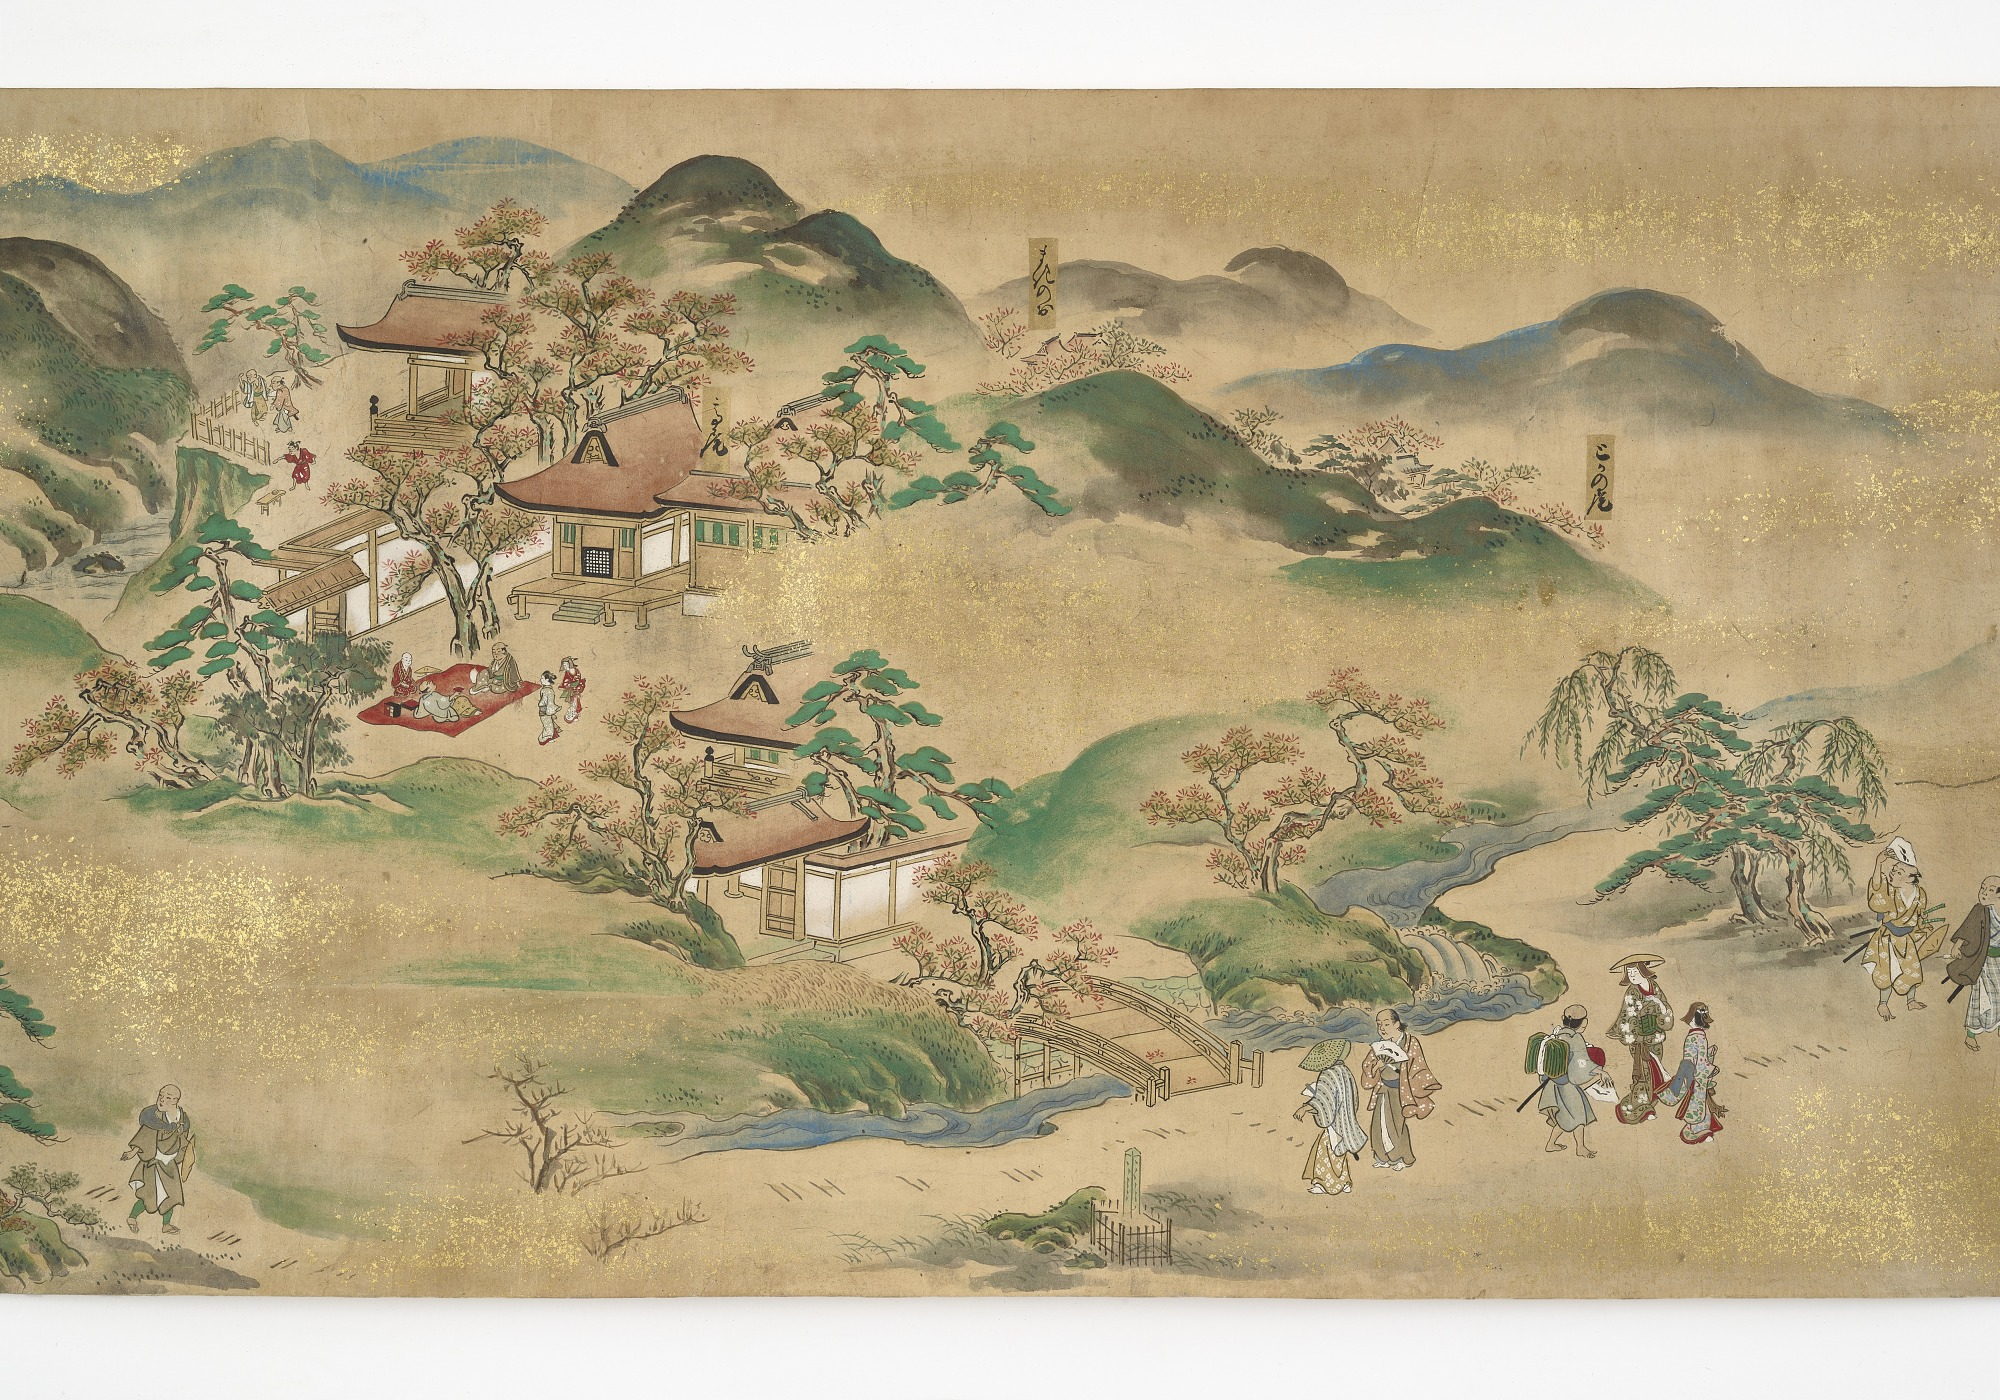 Pictures of Excursions through the Famous Sites of the Capital (Rakuyo meisho kan